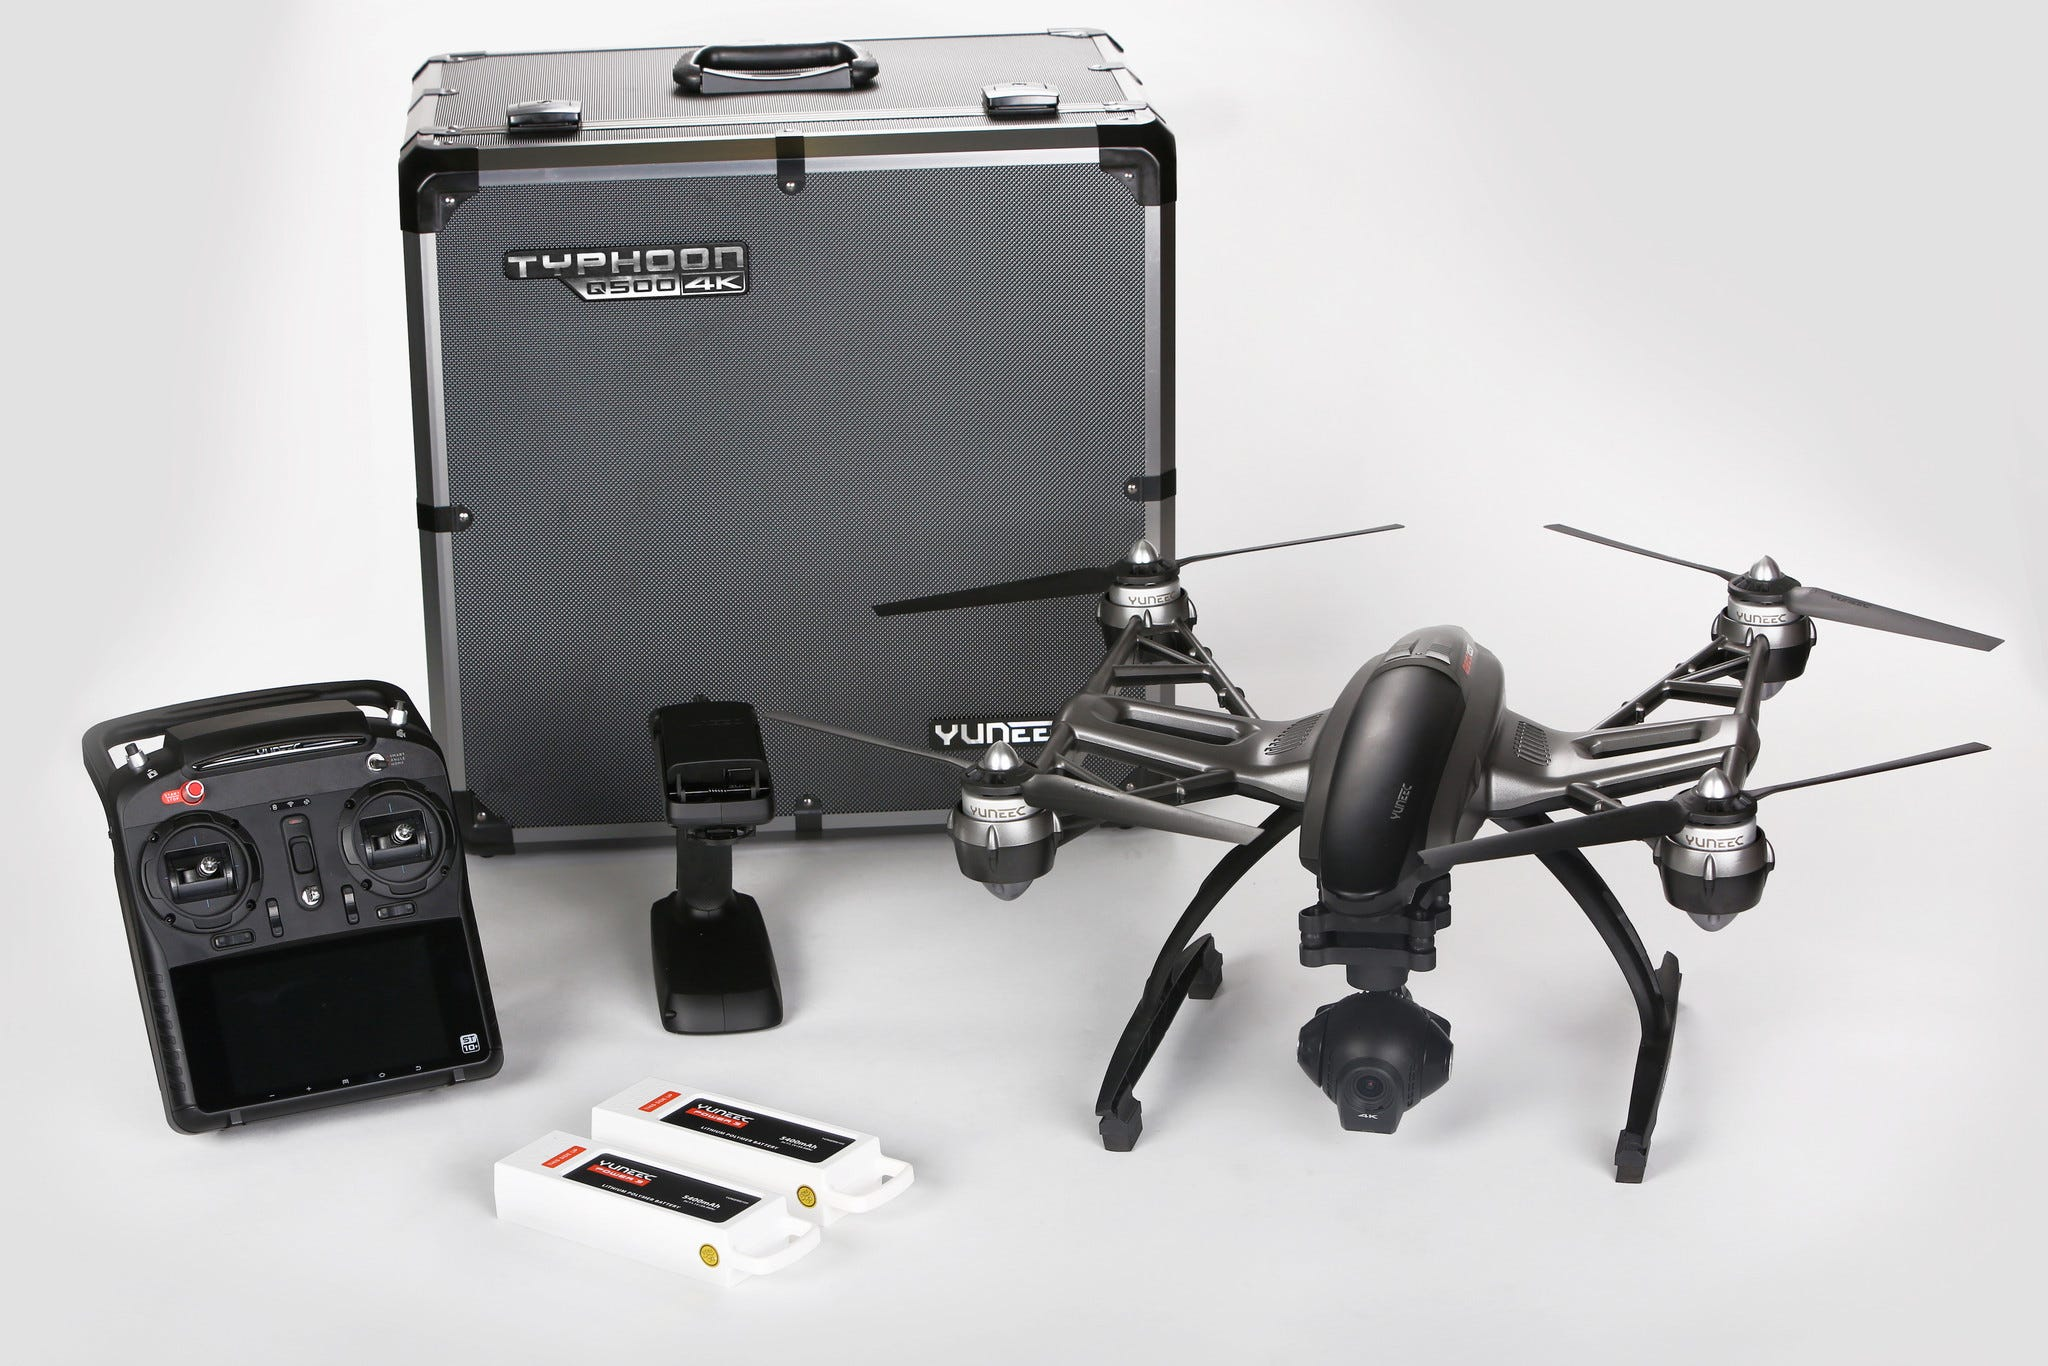 4108286_1445572192 yuneec typhoon q500 drone with 4k hd camera from sporty's pilot shop CCTV Connections and Diagram at n-0.co